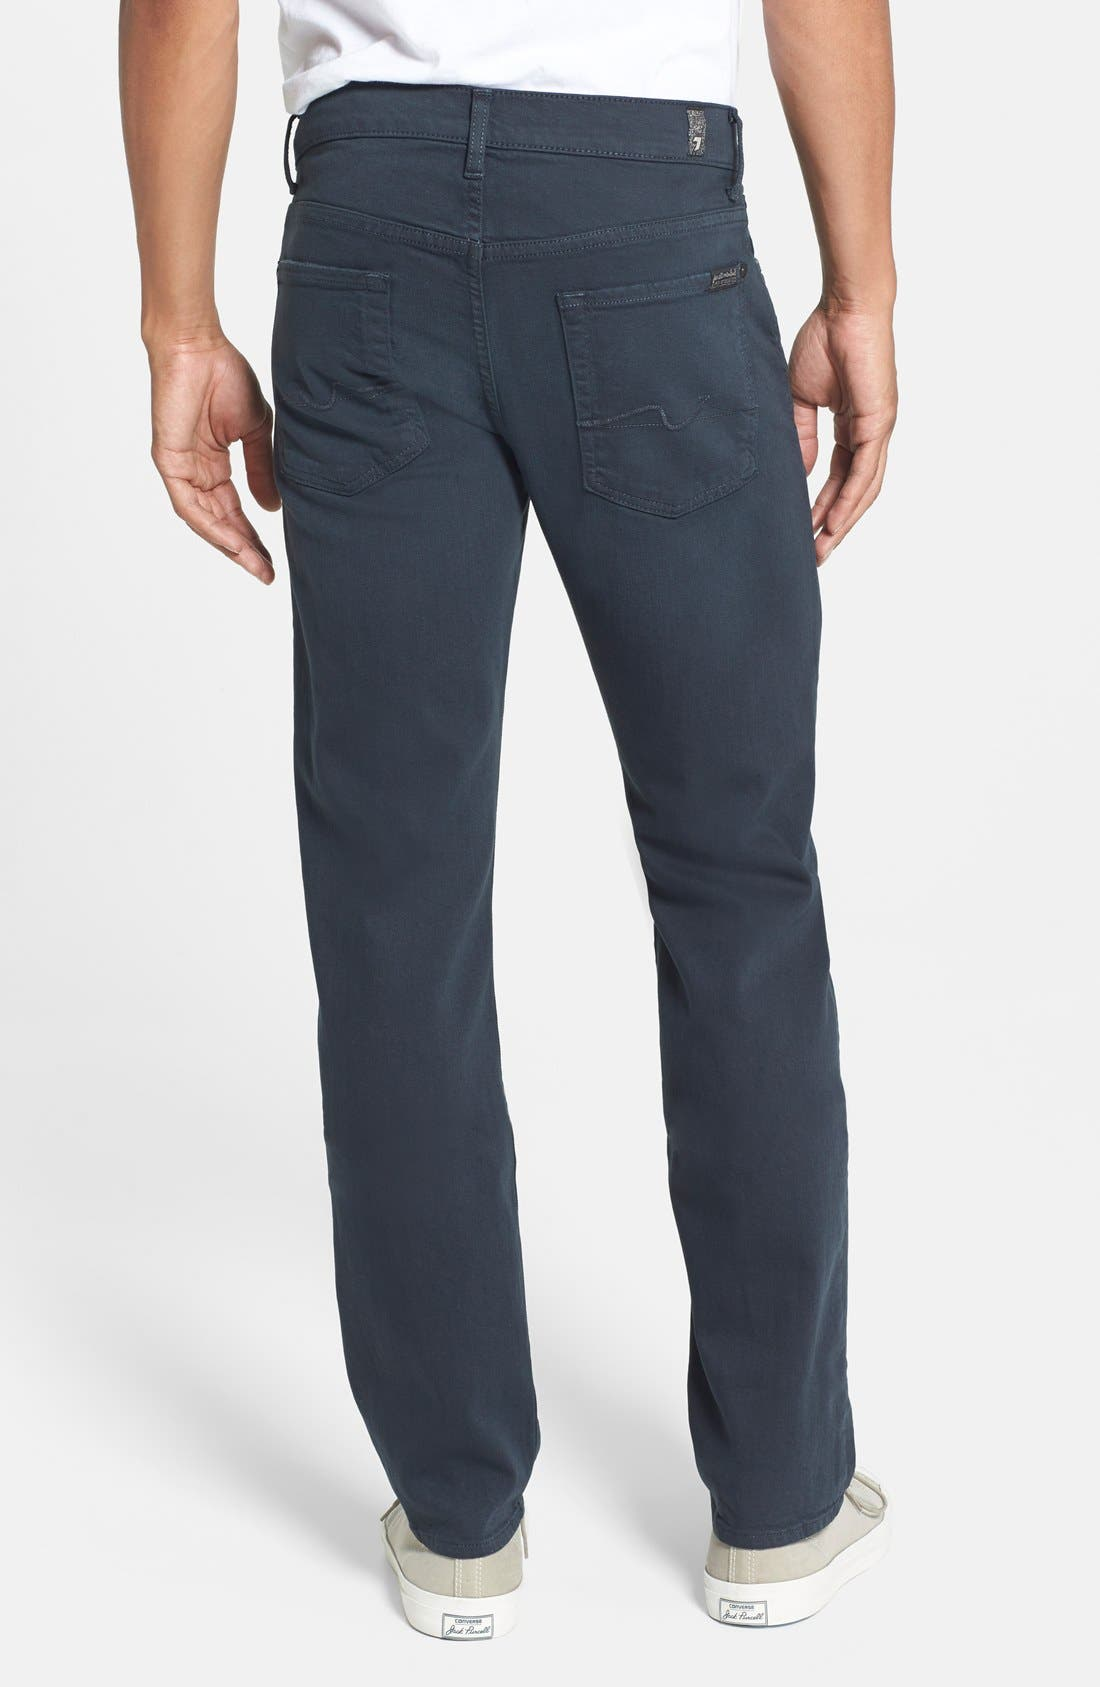 'Slimmy - Luxe Performance' Slim Fit Jeans,                             Alternate thumbnail 2, color,                             004